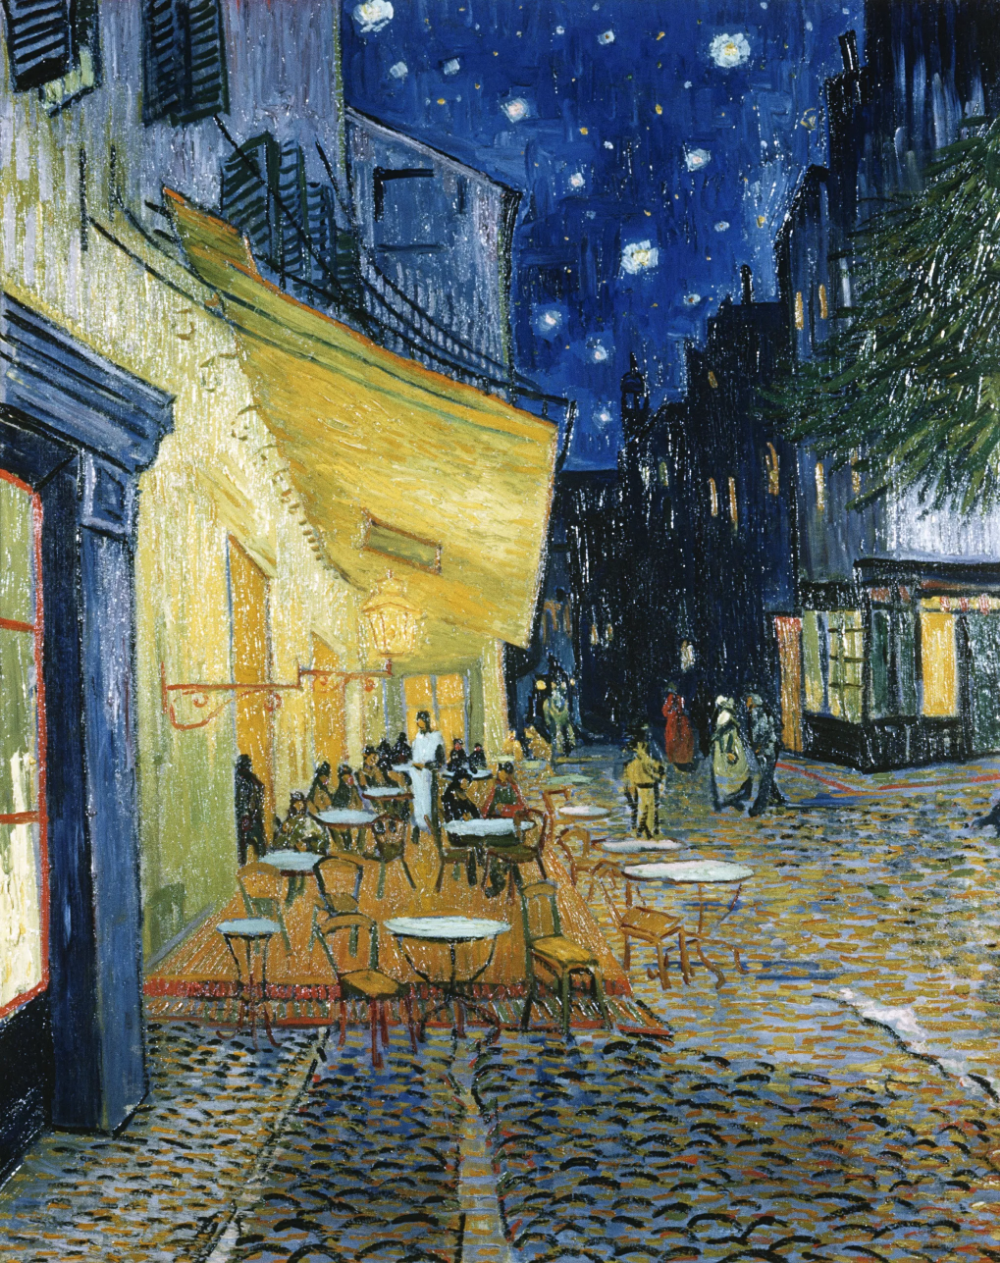 Van Gogh's Most Famous Paintings